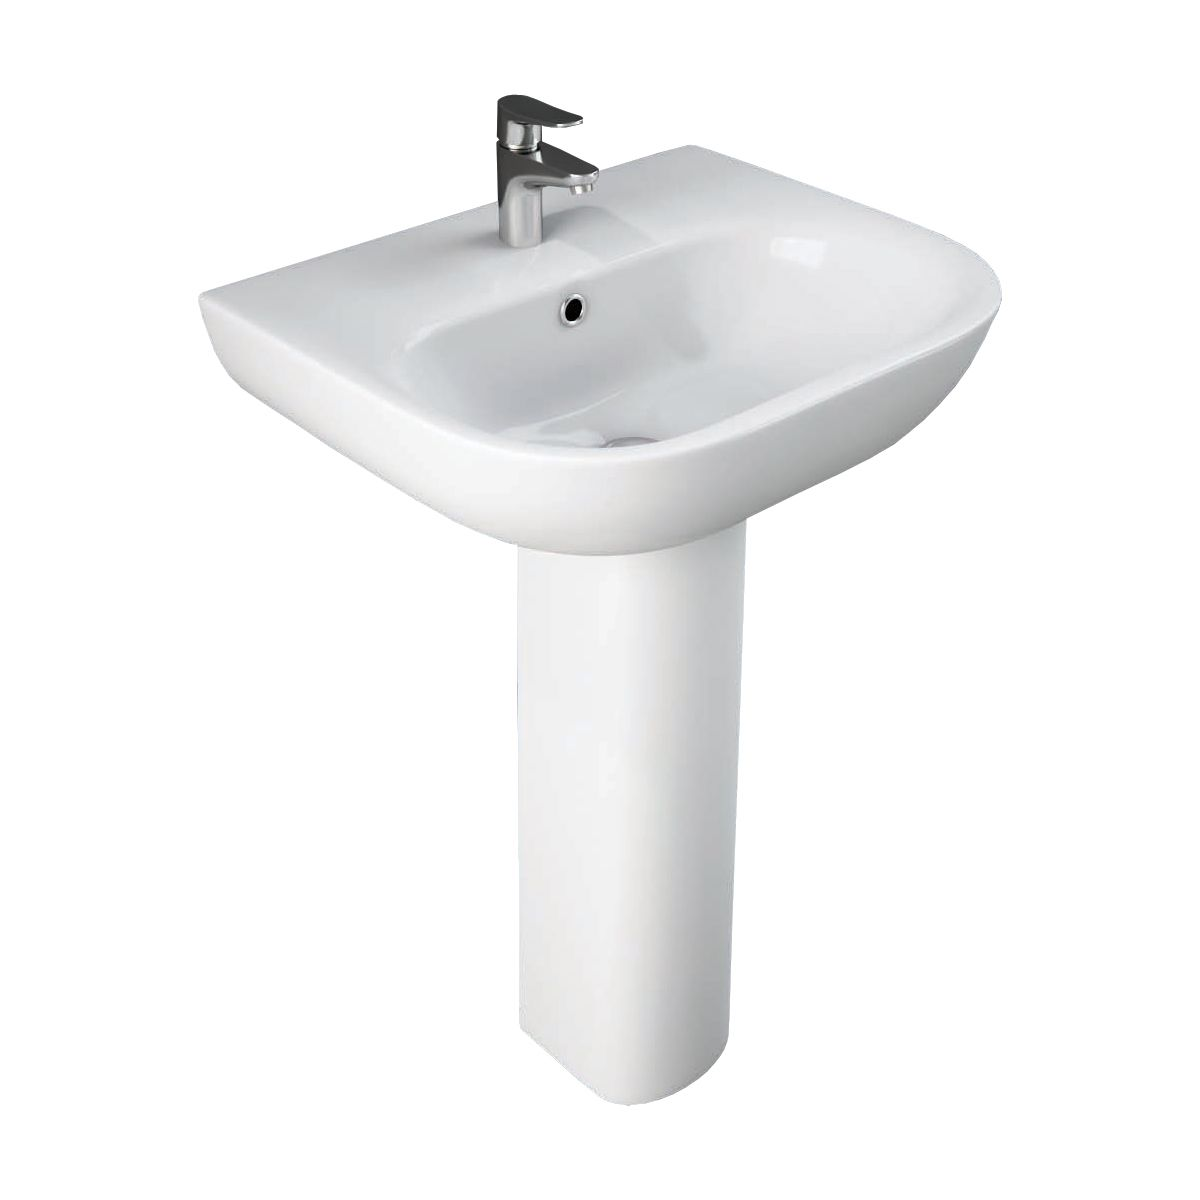 RAK Tonique 1 Tap Hole Basin with Full Pedestal